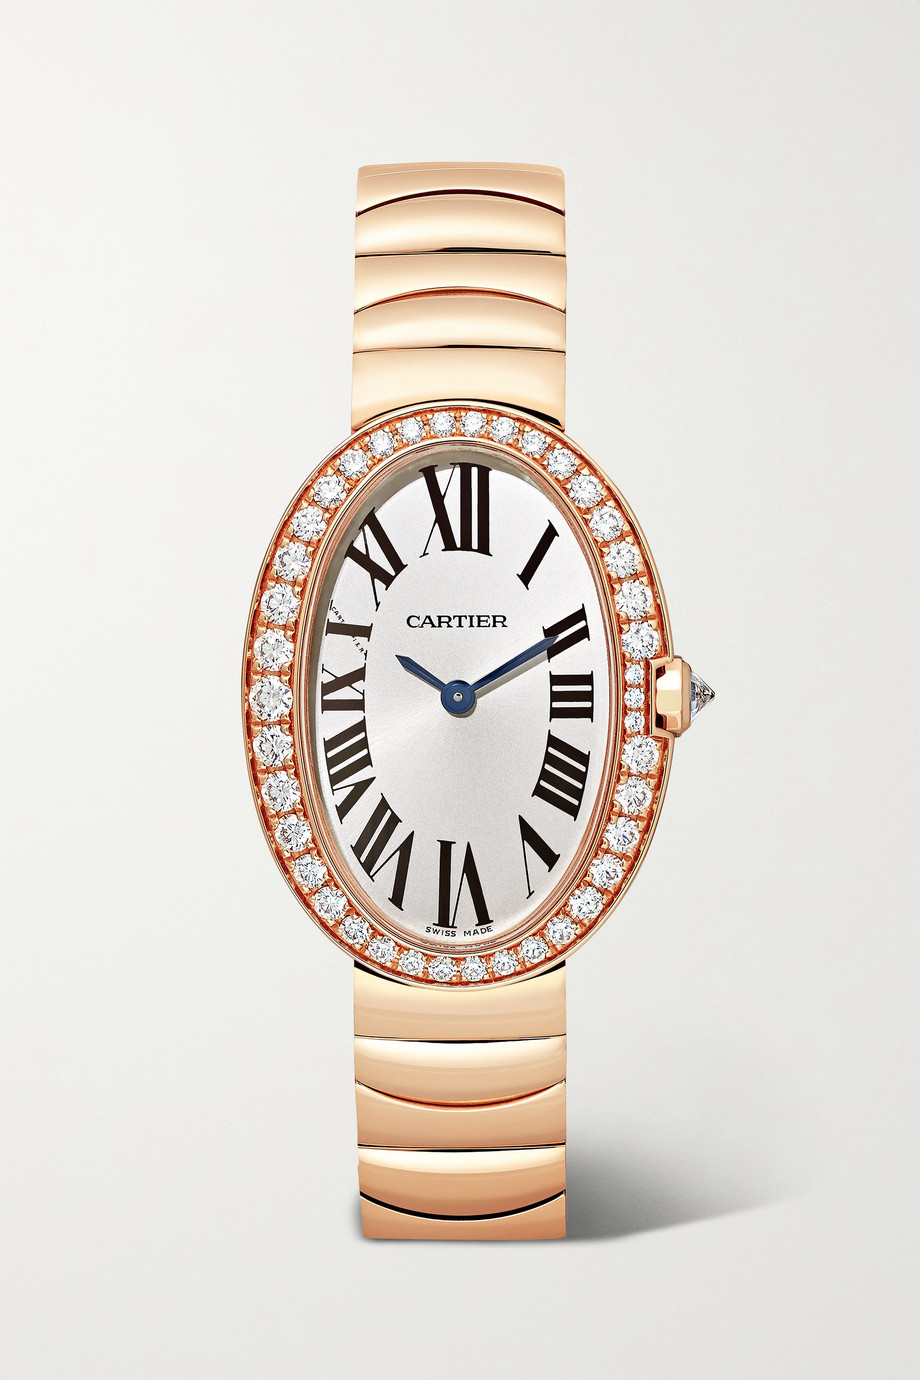 Cartier Baignoire 24.5mm small 18-karat pink gold and diamond watch